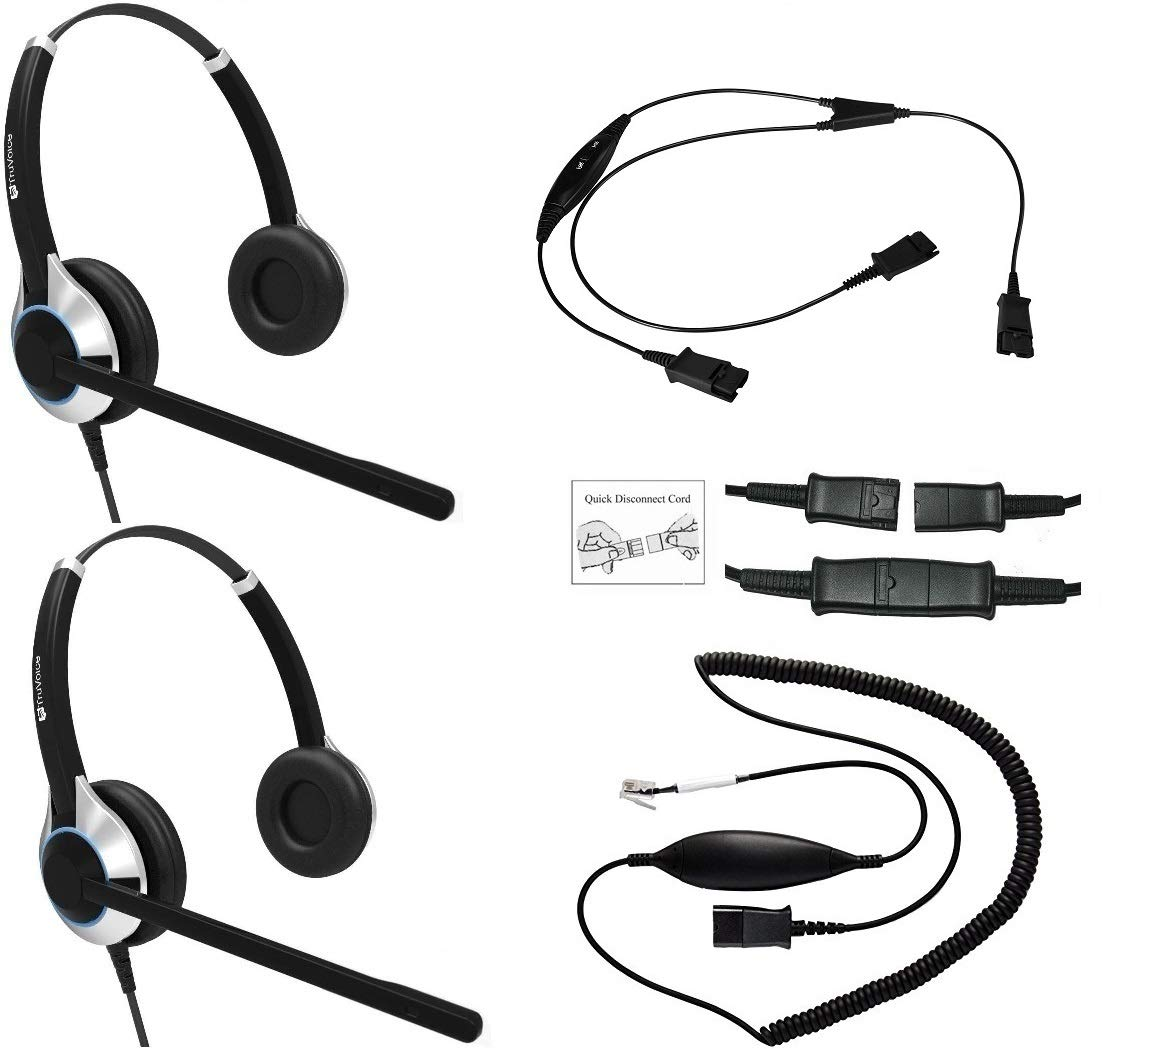 Headset Training Solution (Includes 2 x TruVoice HD-550 Deluxe Double Ear headsets with Noise Canceling Microphone, Training Cord and Smart Lead Works on 95% of Phones with RJ9 / RJ11 Headset Port)